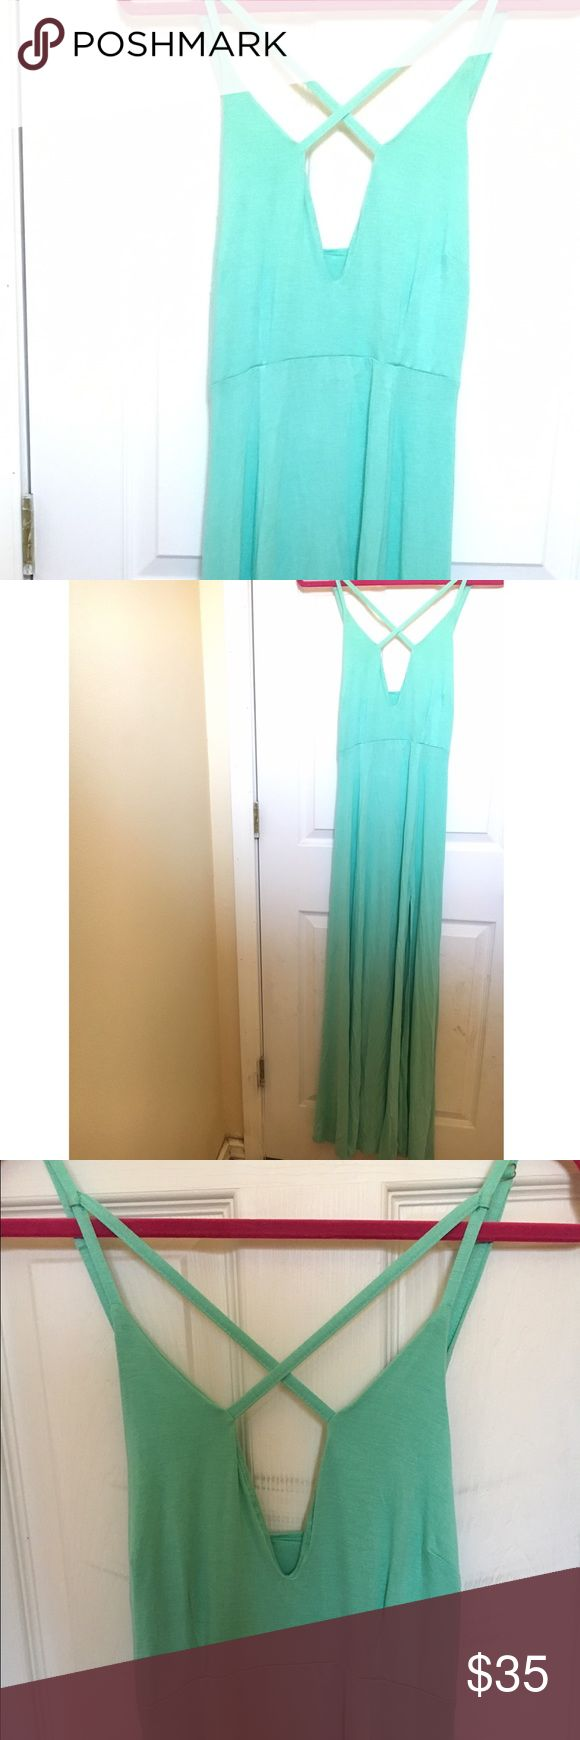 Teal maxi dress Stretchy teal dress with slit on the left side. Never worn. Dresses Maxi